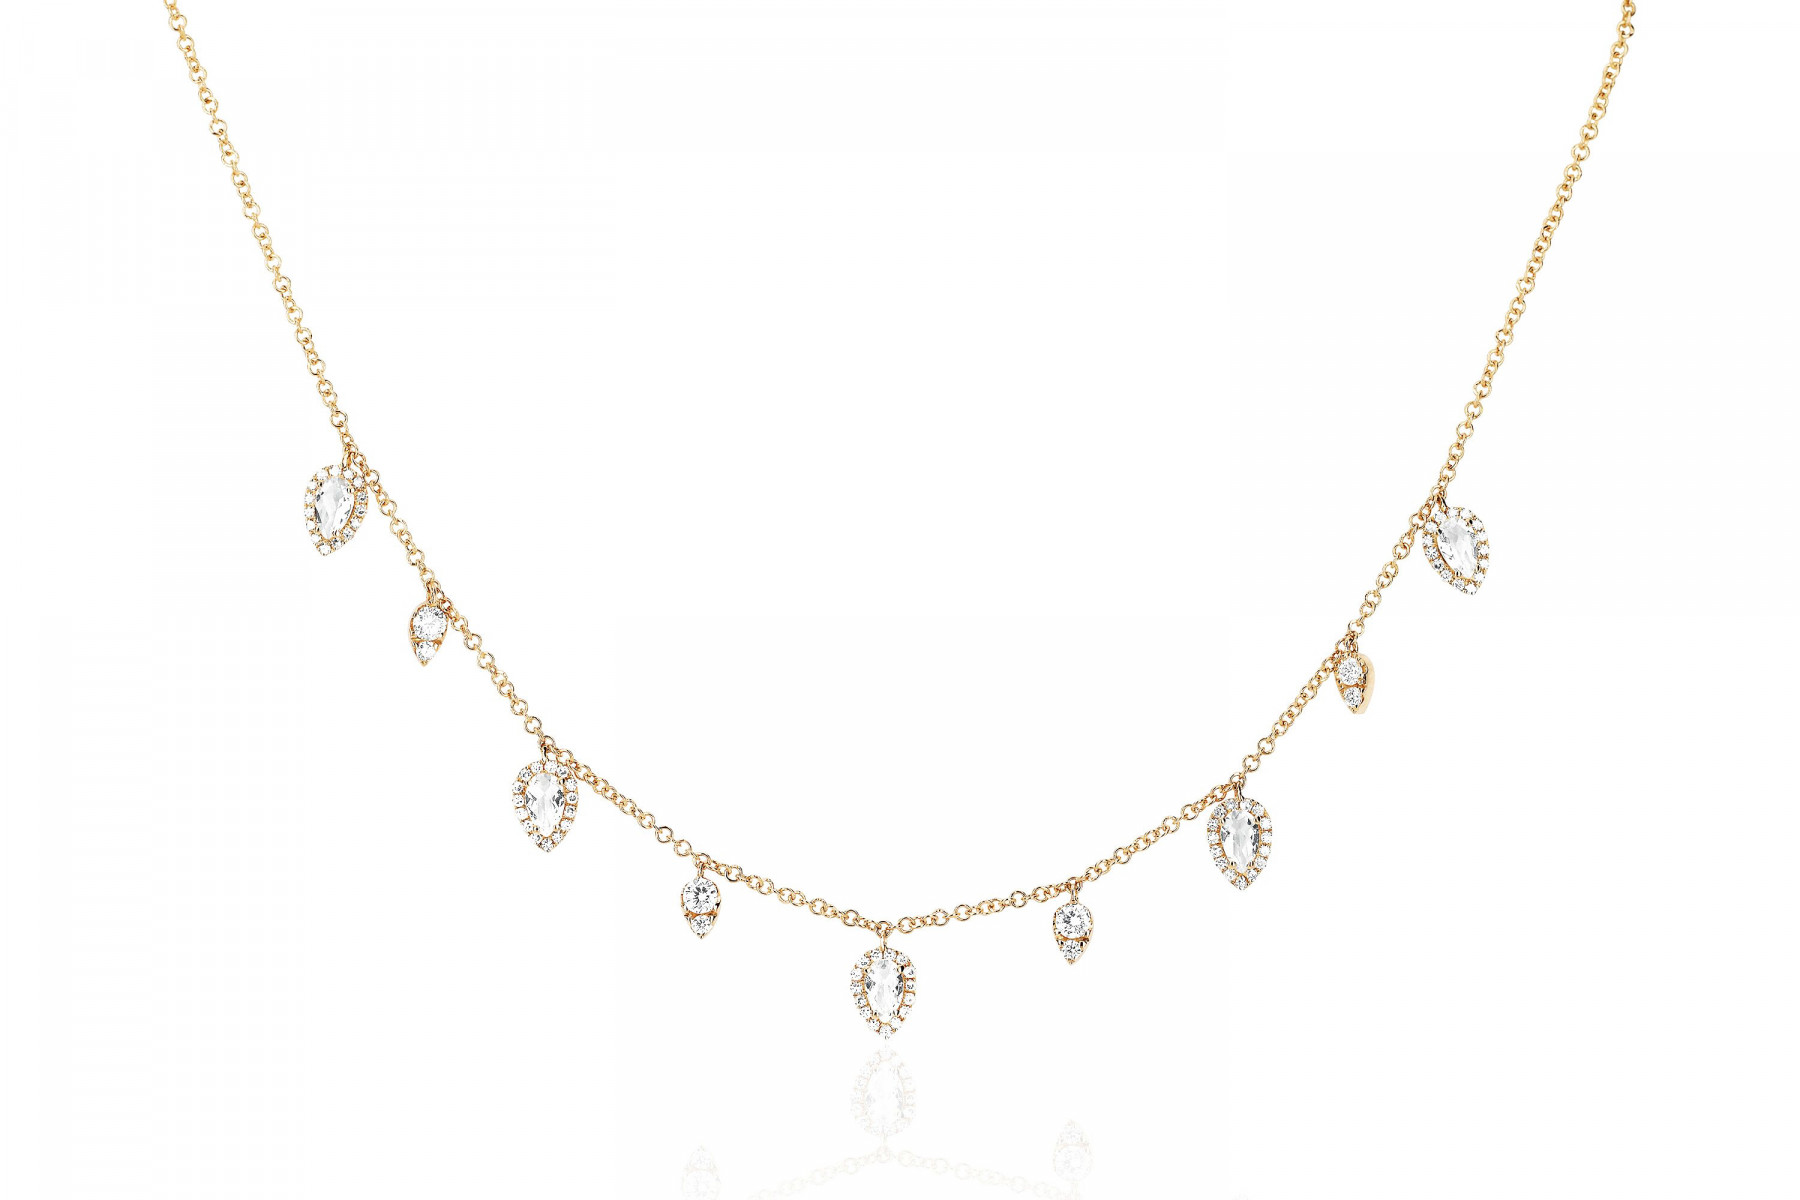 EF Collection Teardrop Station Necklace in 14K Gold